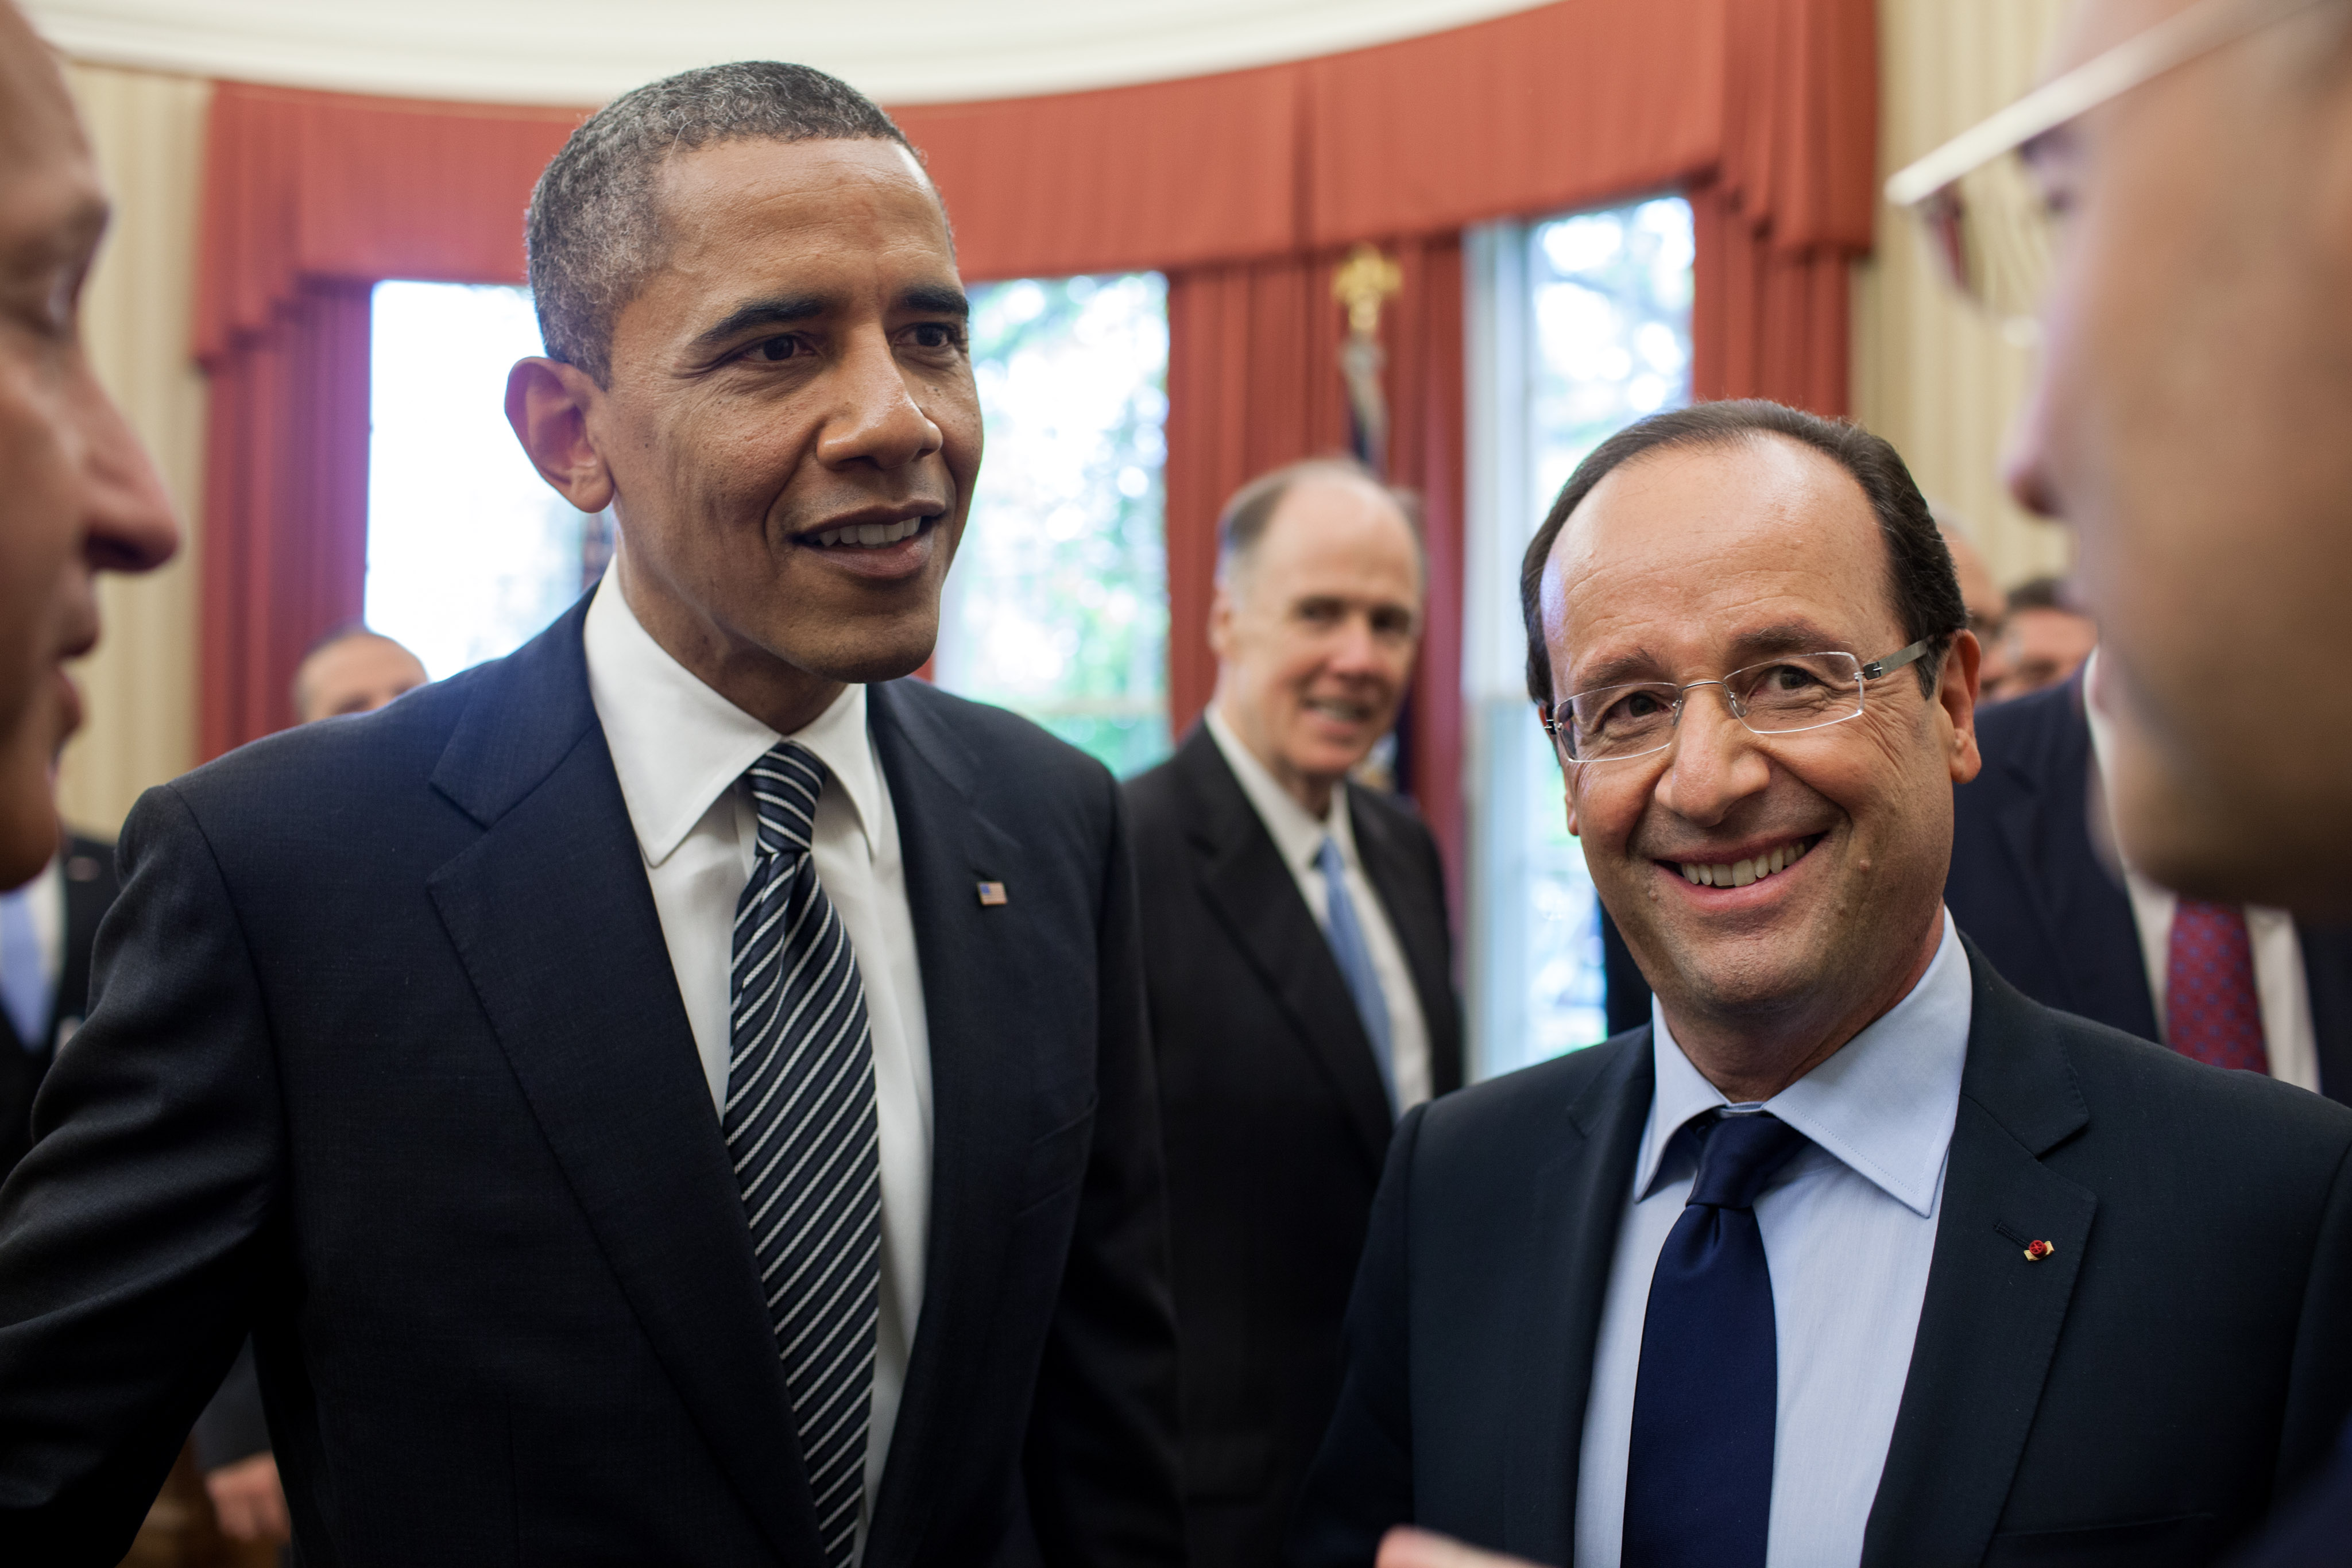 http://upload.wikimedia.org/wikipedia/commons/3/3d/Barack_Obama_and_Francois_Hollande_bilateral_meeting_May_18,_2012.jpg